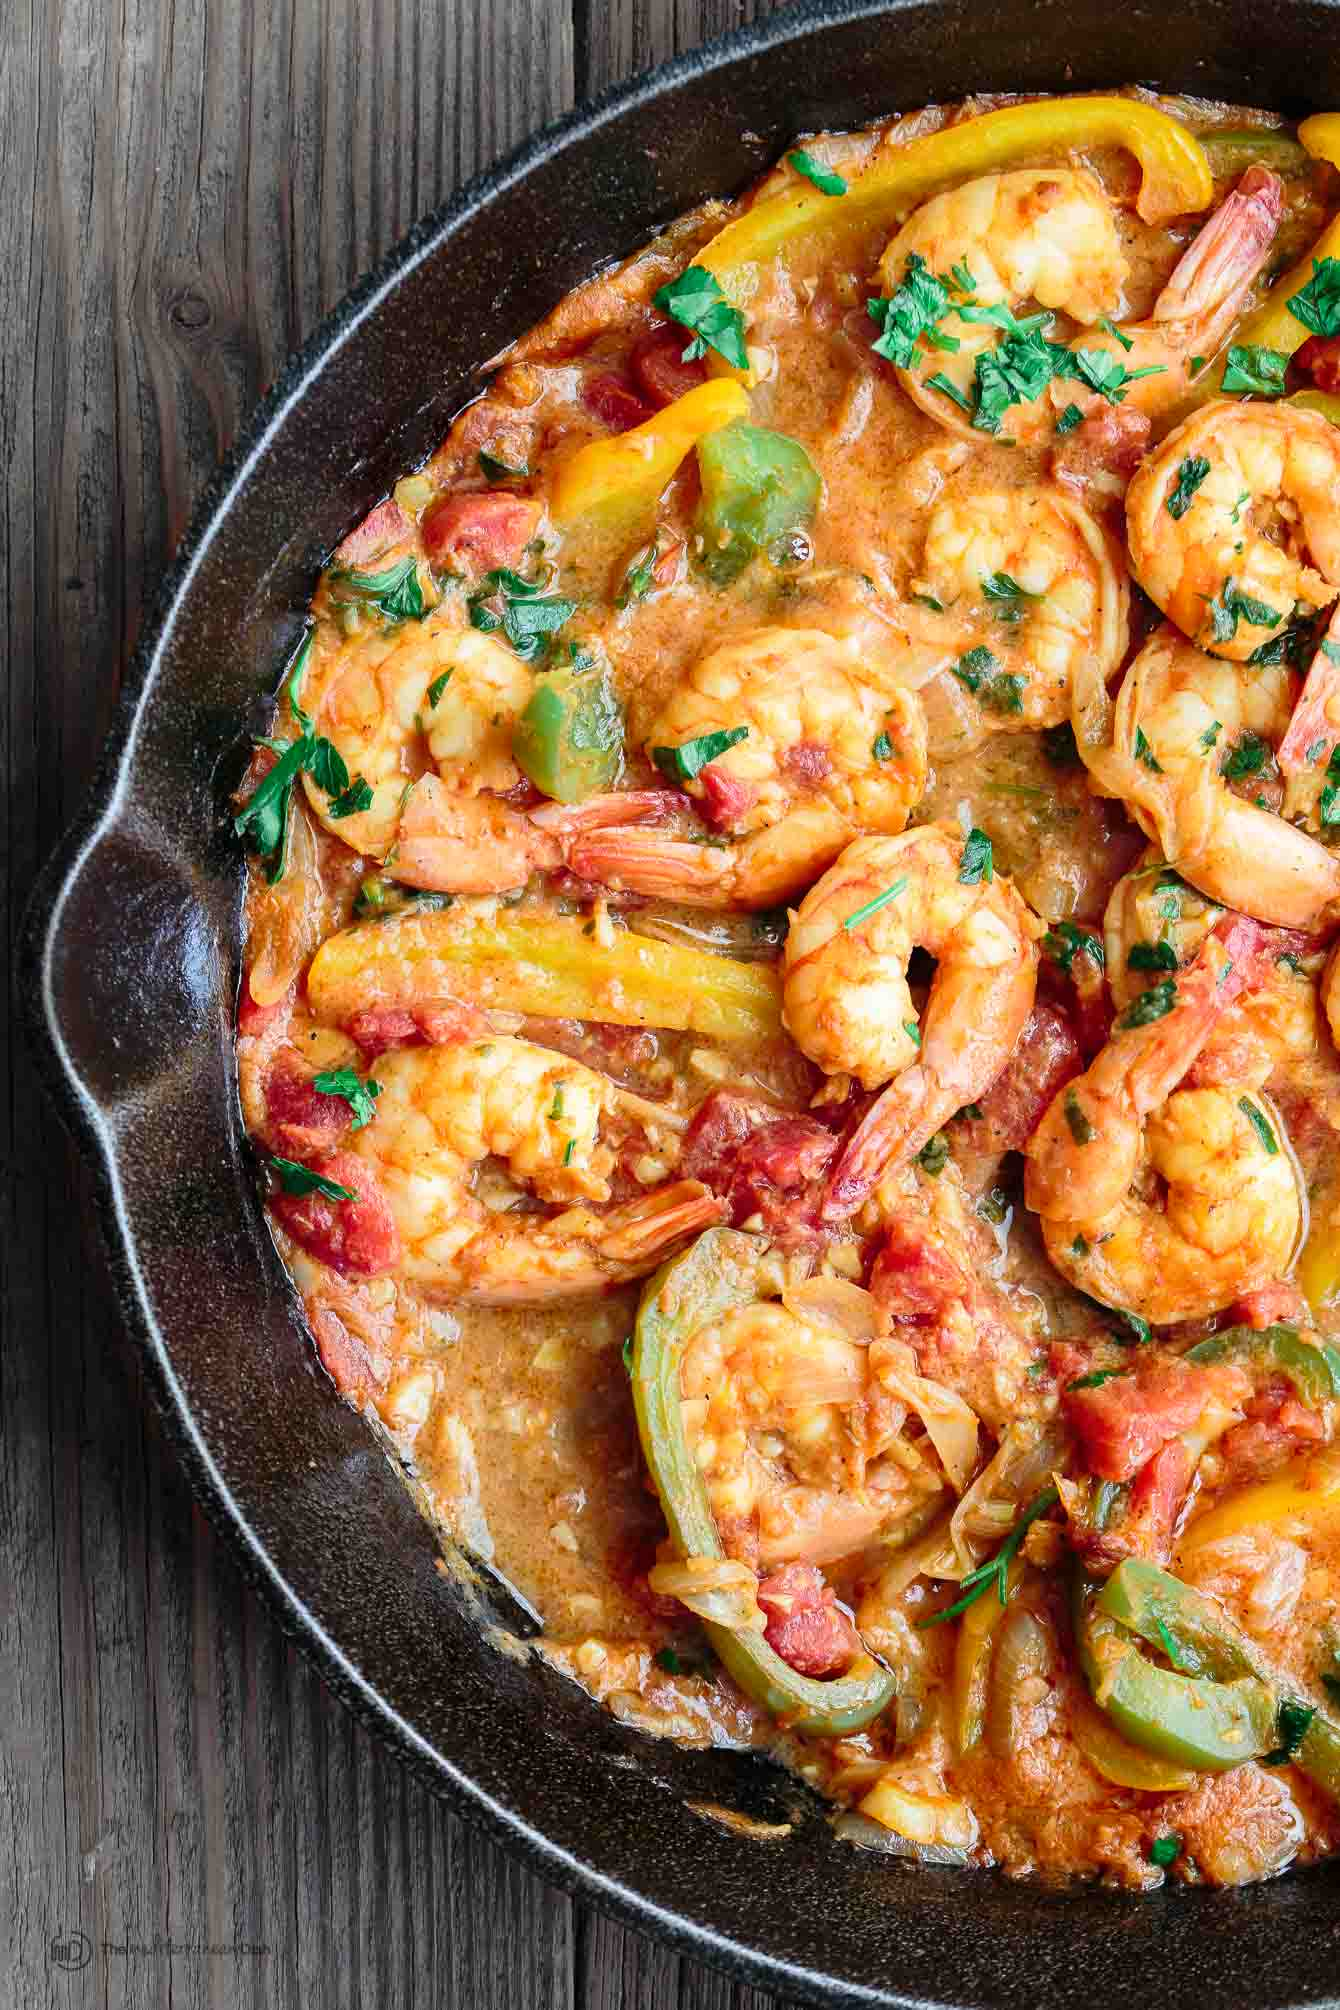 Easy shrimp recipe mediterranean style the mediterranean dish easy shrimp recipe the mediterranean dish easy mediterranean skillet shrimp packed with flavor forumfinder Choice Image